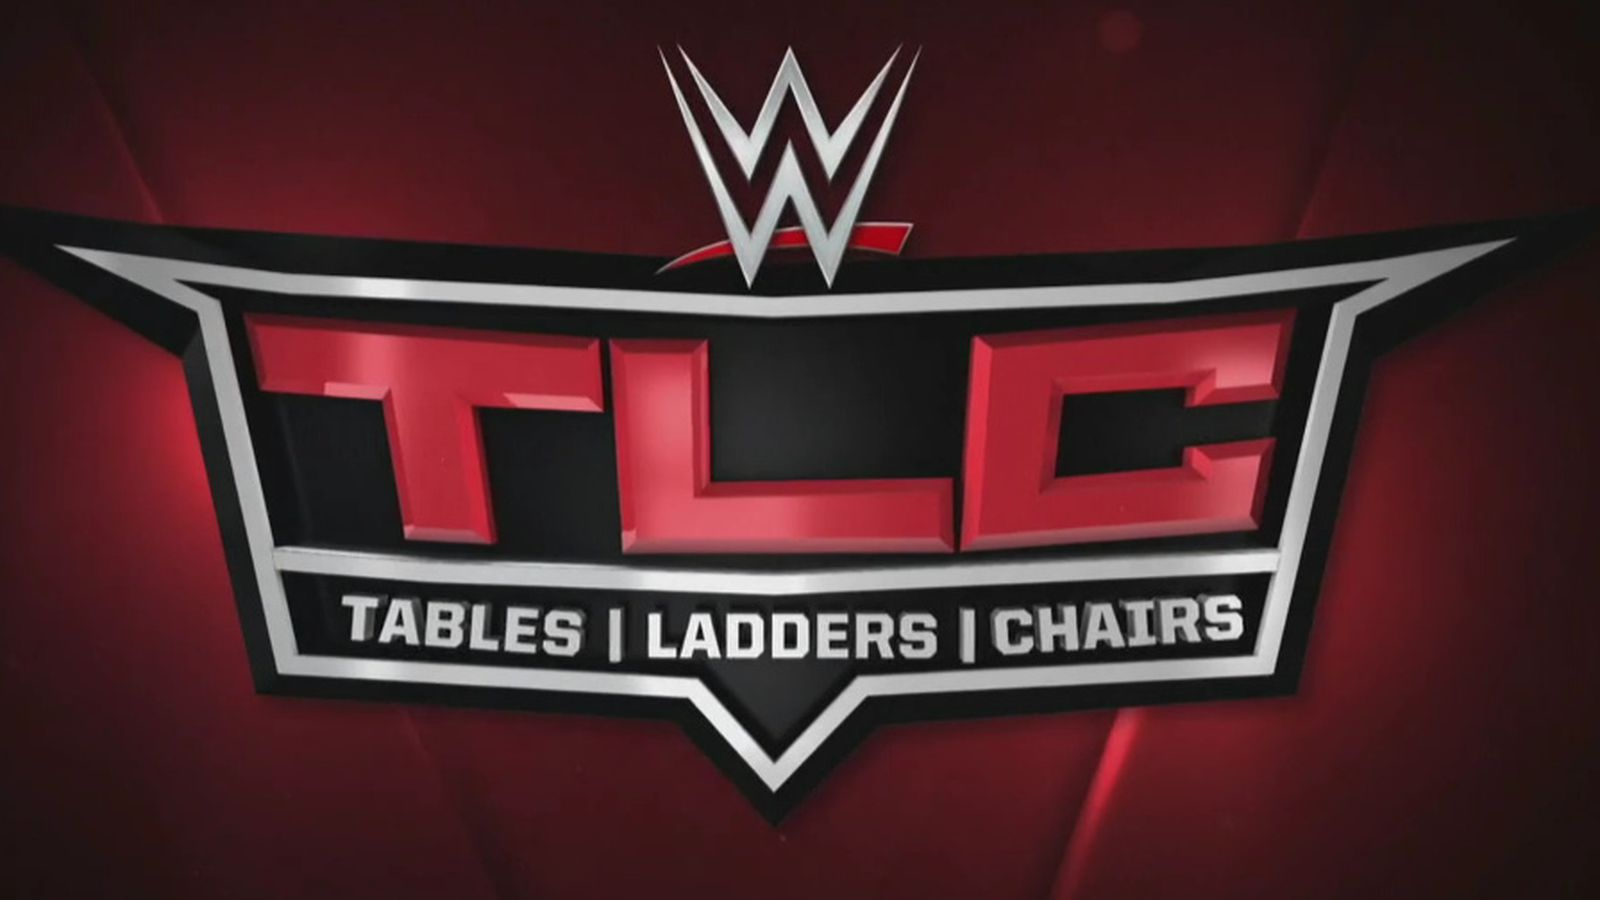 WWE TLC 2015 live stream: How to watch online, WWE Network details - Cageside Seats